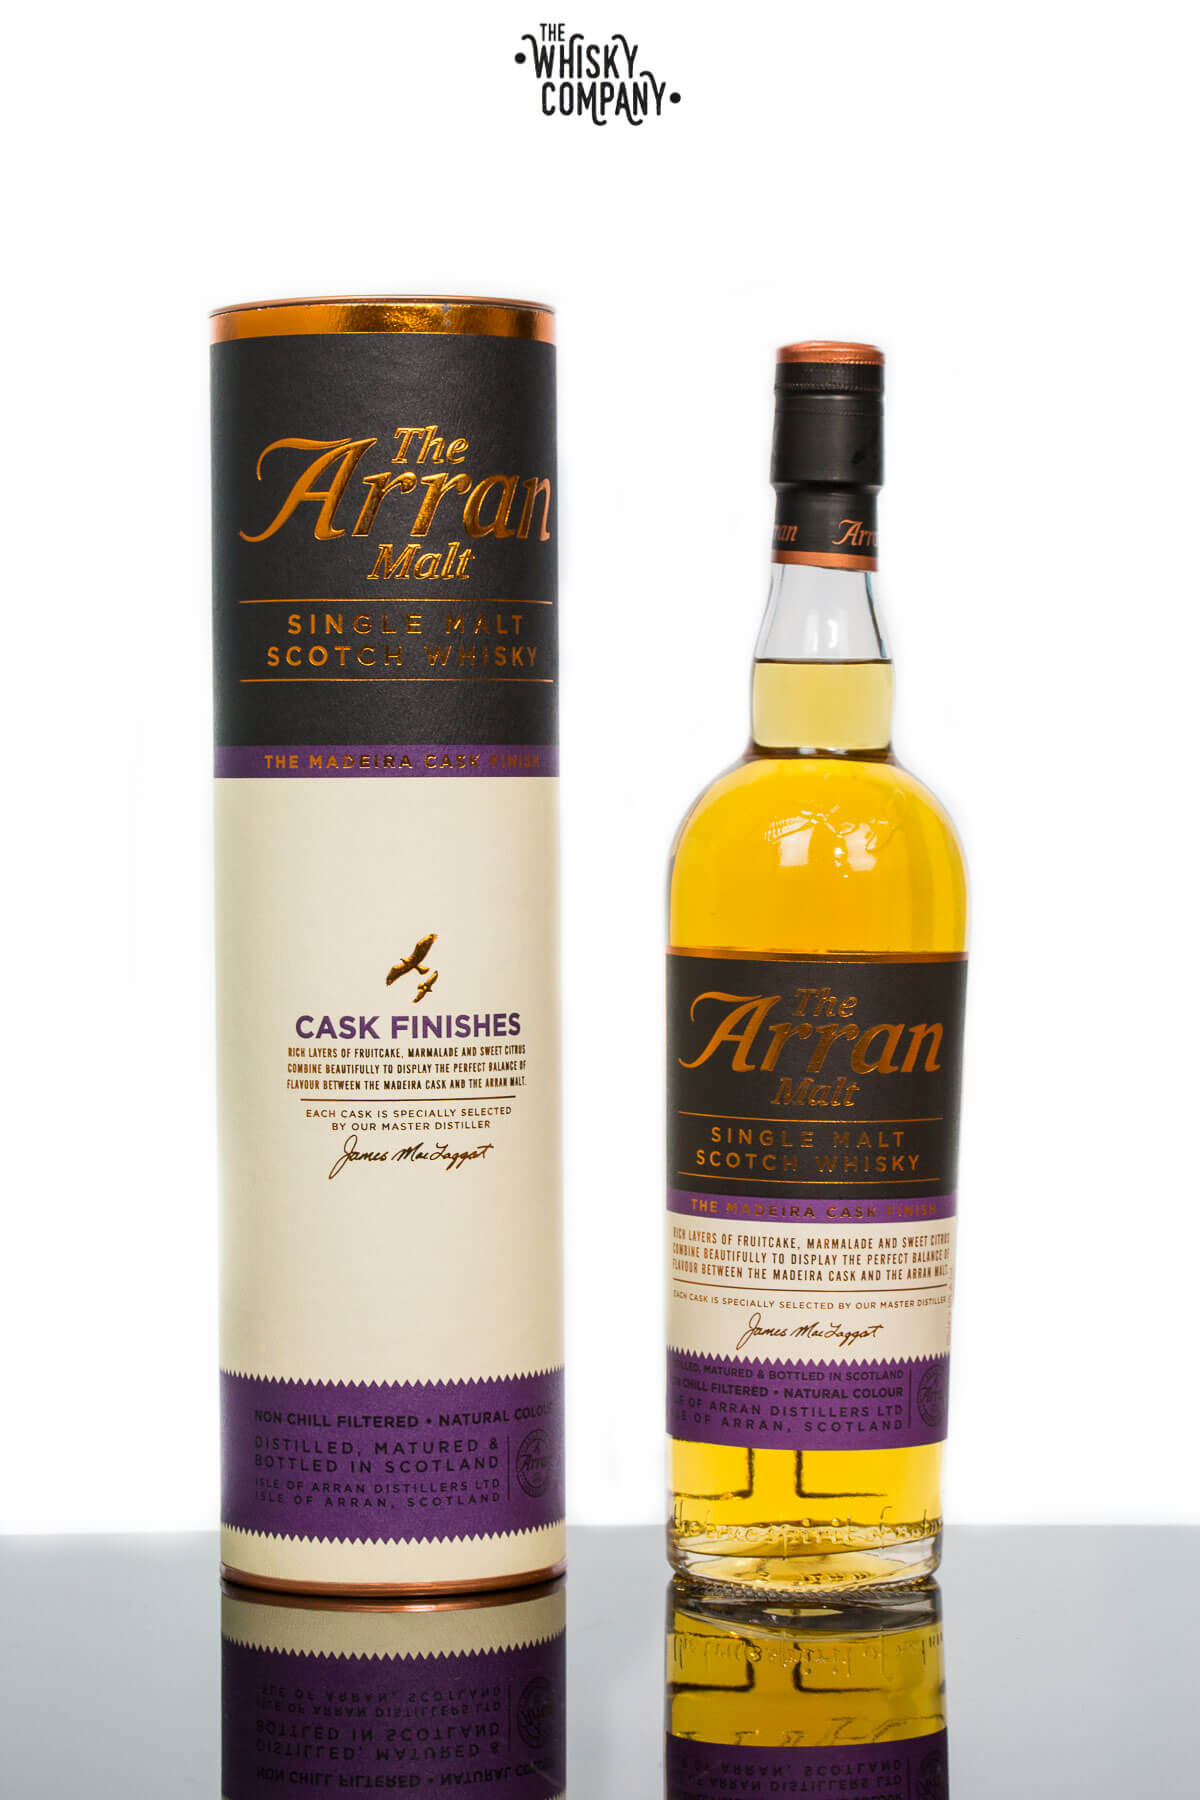 Arran Madeira Cask Finish Island Single Malt Scotch Whisky (700ml)